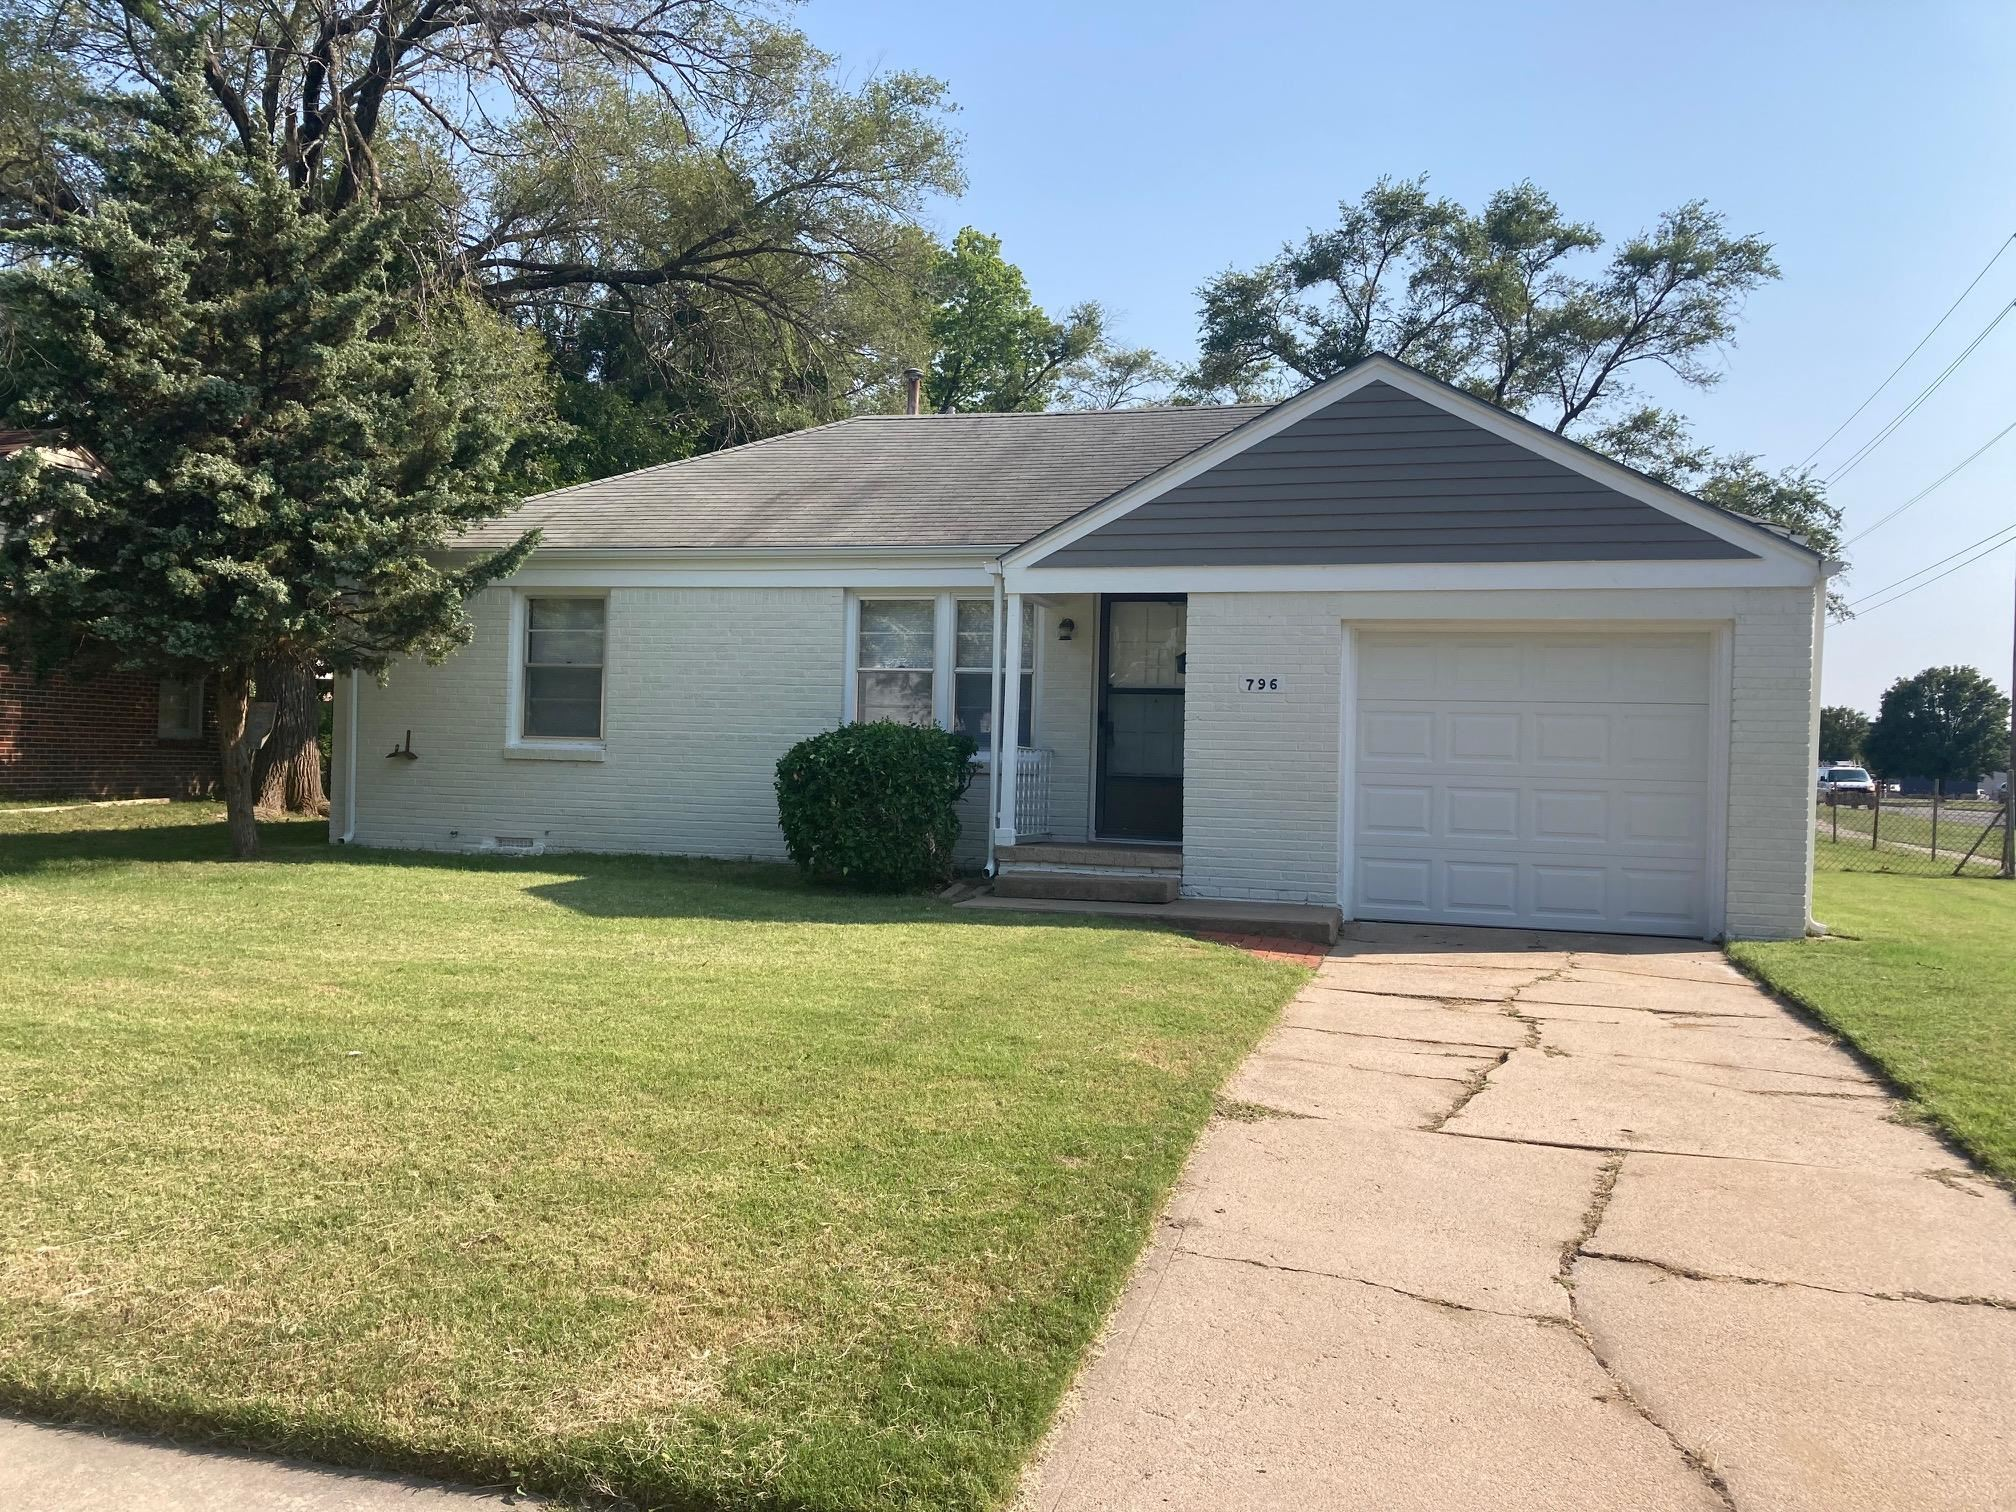 Nice updated 2 bedroom 1 bath home in East Wichita.  This home features a large living and adjoining